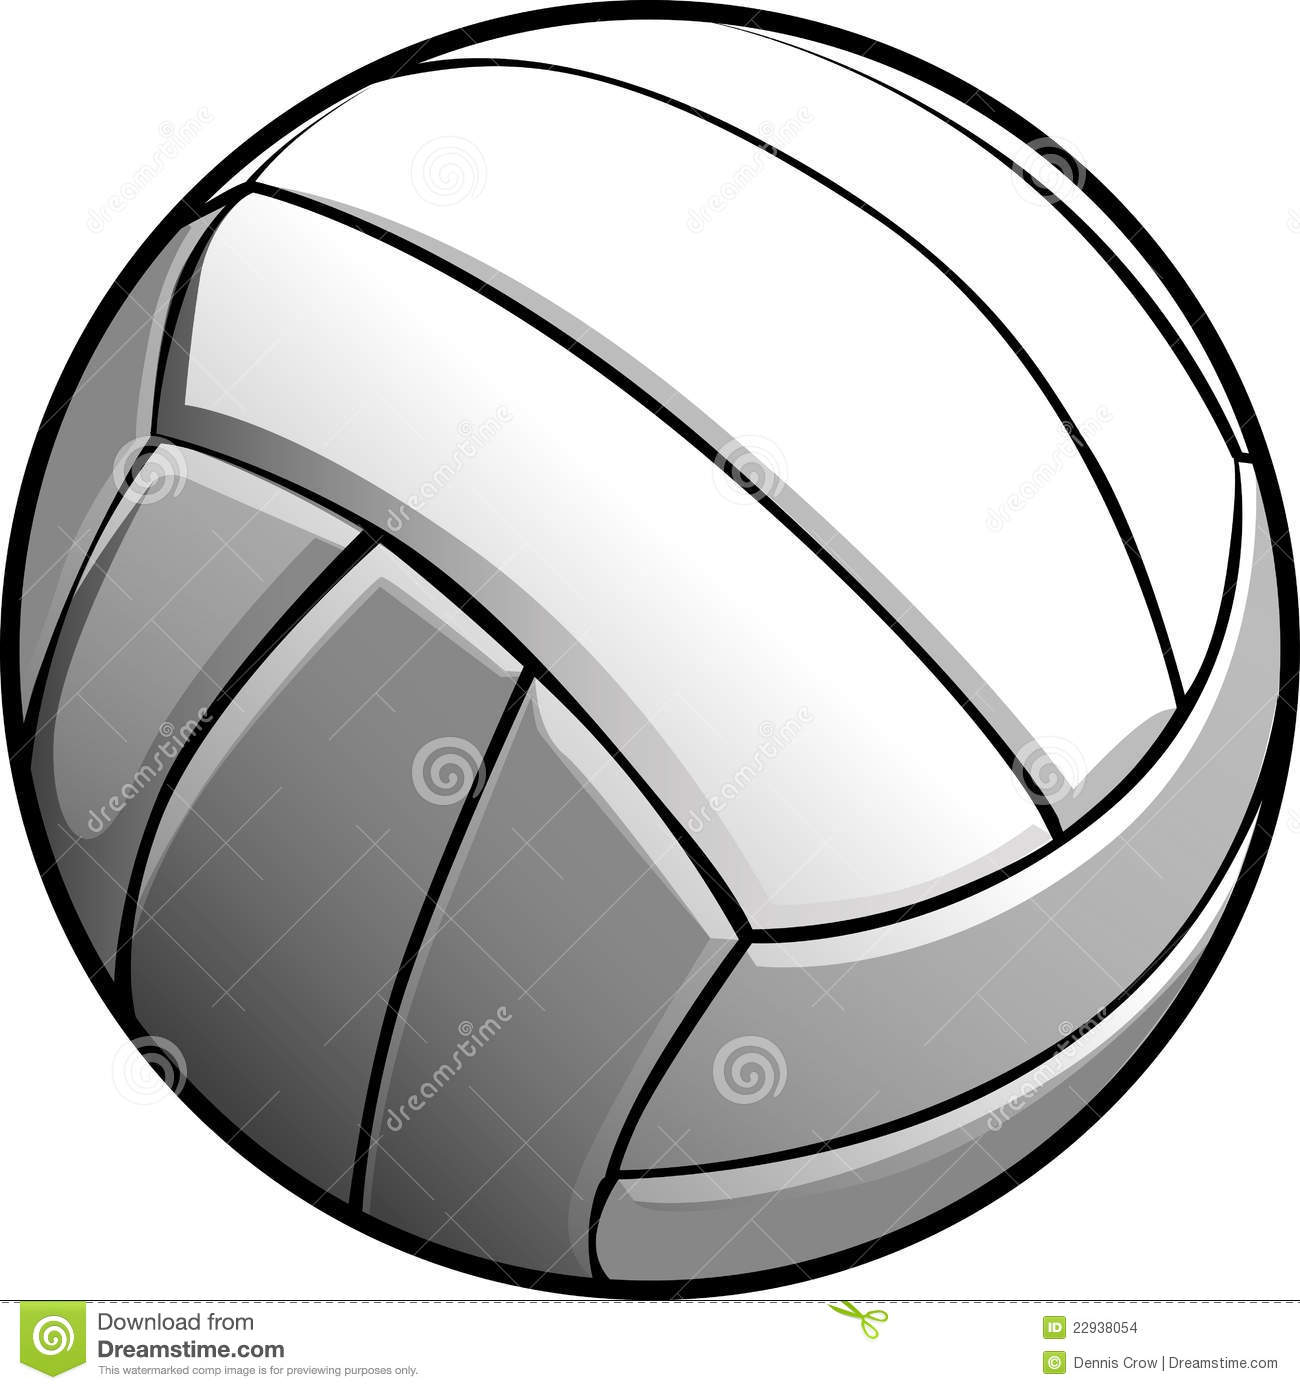 Volleyball Ball Image Icon Stock Images - Image: 22938054